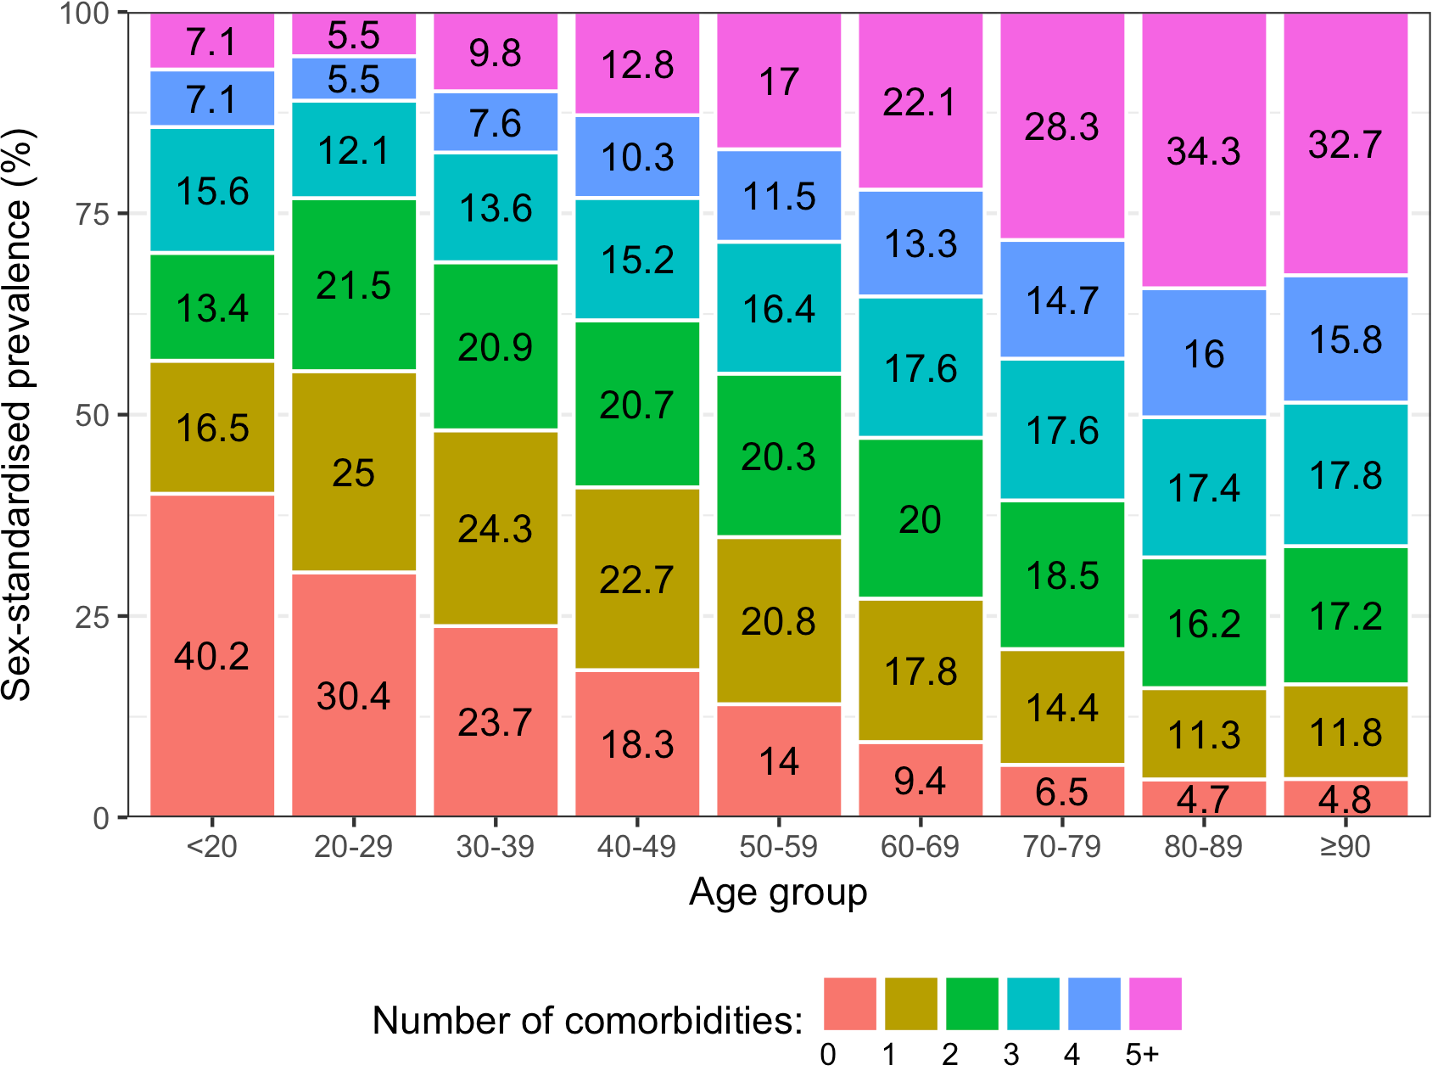 Sex-standardised prevalence of number of conditions in patients with incident cardiovascular disease by age group (years).